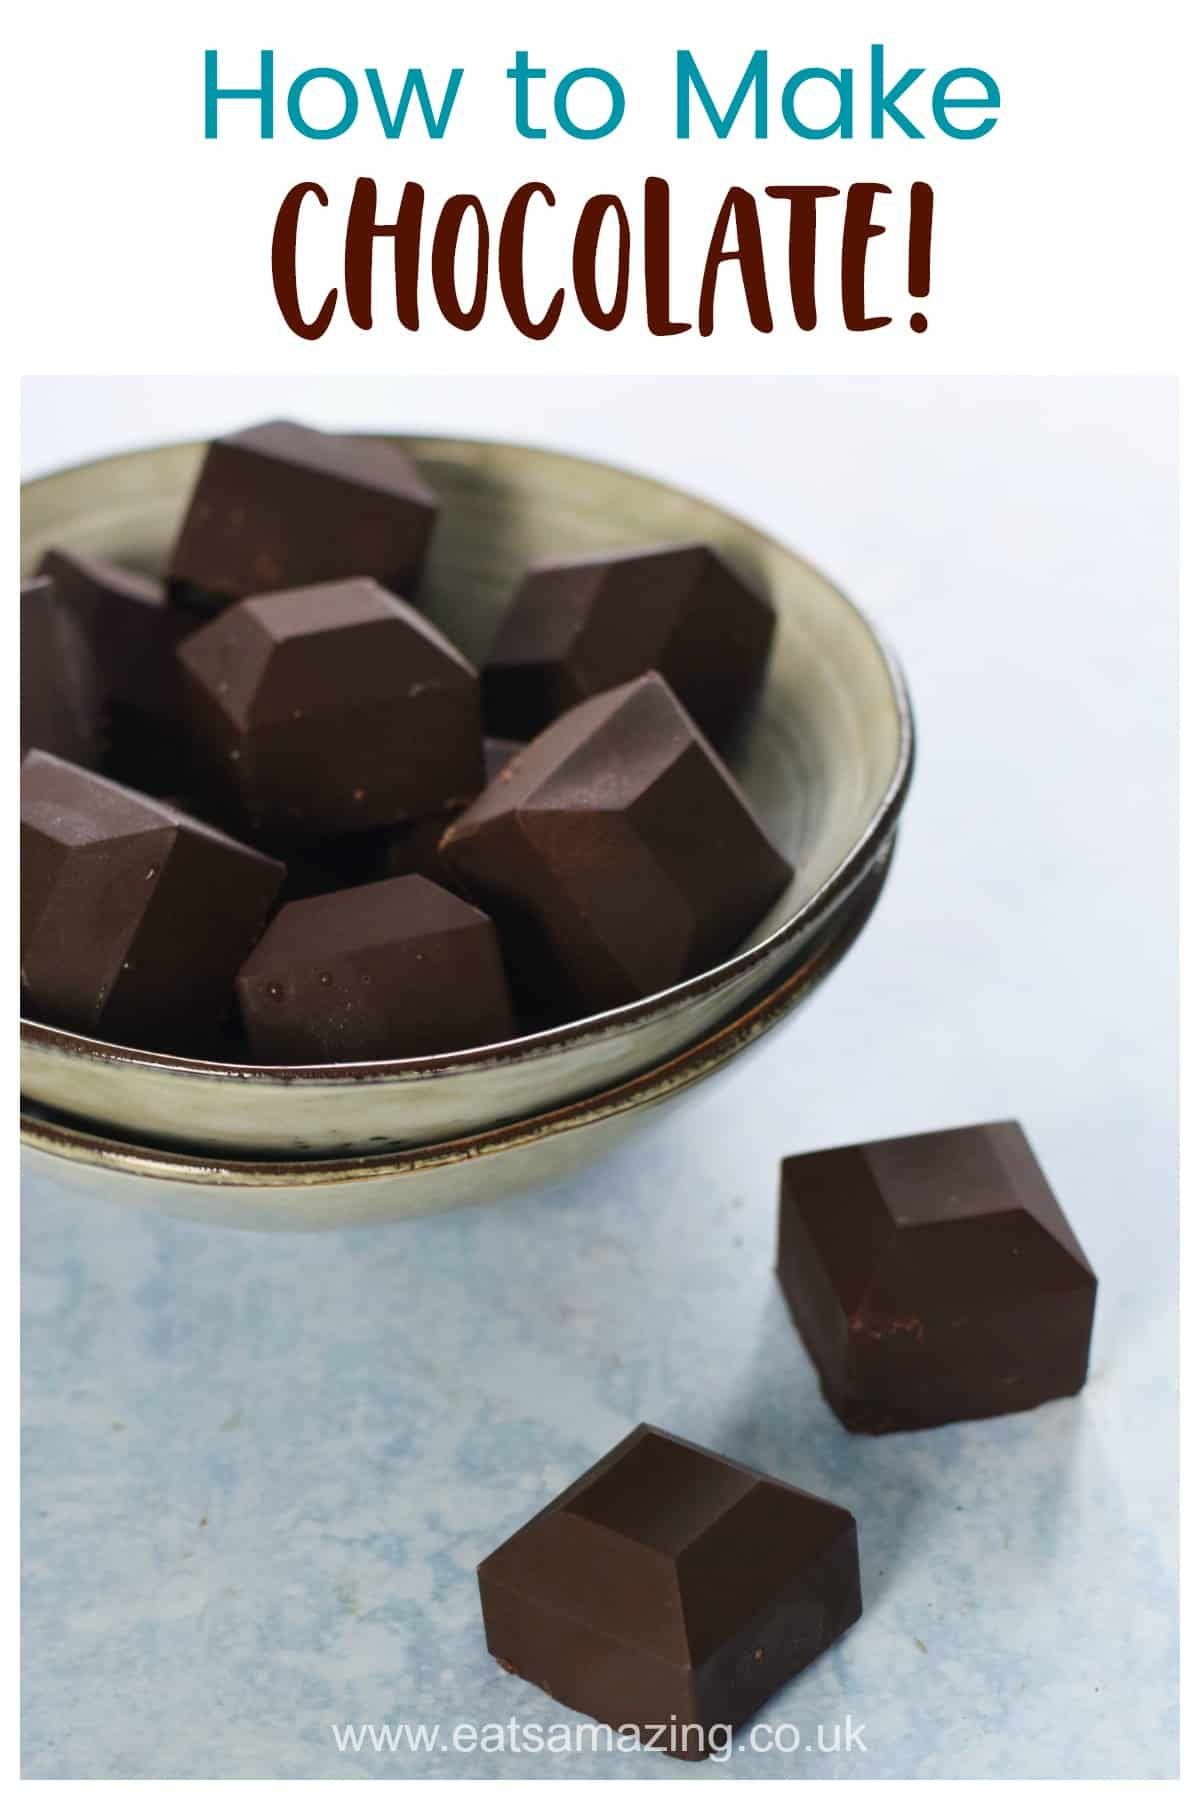 How to make your own chocolate from coconut oil and cocoa powder - super easy recipe for kids